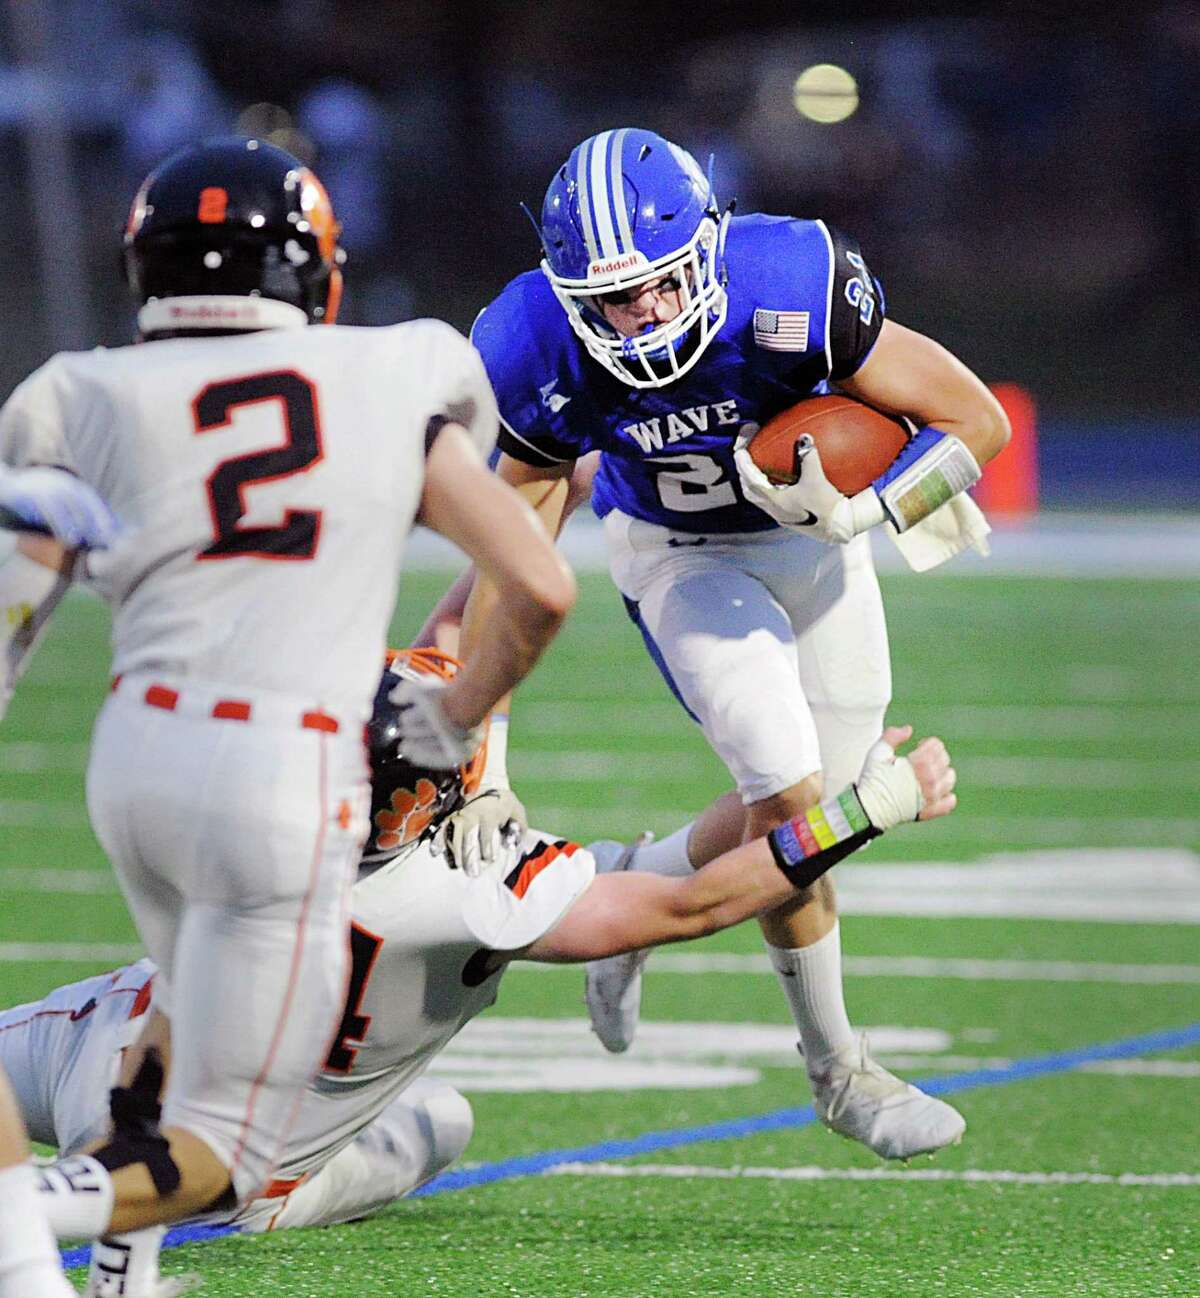 At right, Will Kirby, a Darien running back, breaks to the outside during the season opening high school football game between Darien High School and Ridgefield High School at Darien, Conn., Friday night, Sept. 7, 2018. Closing in for the tackle is Evan Wein (#2) of Ridgefield at left.